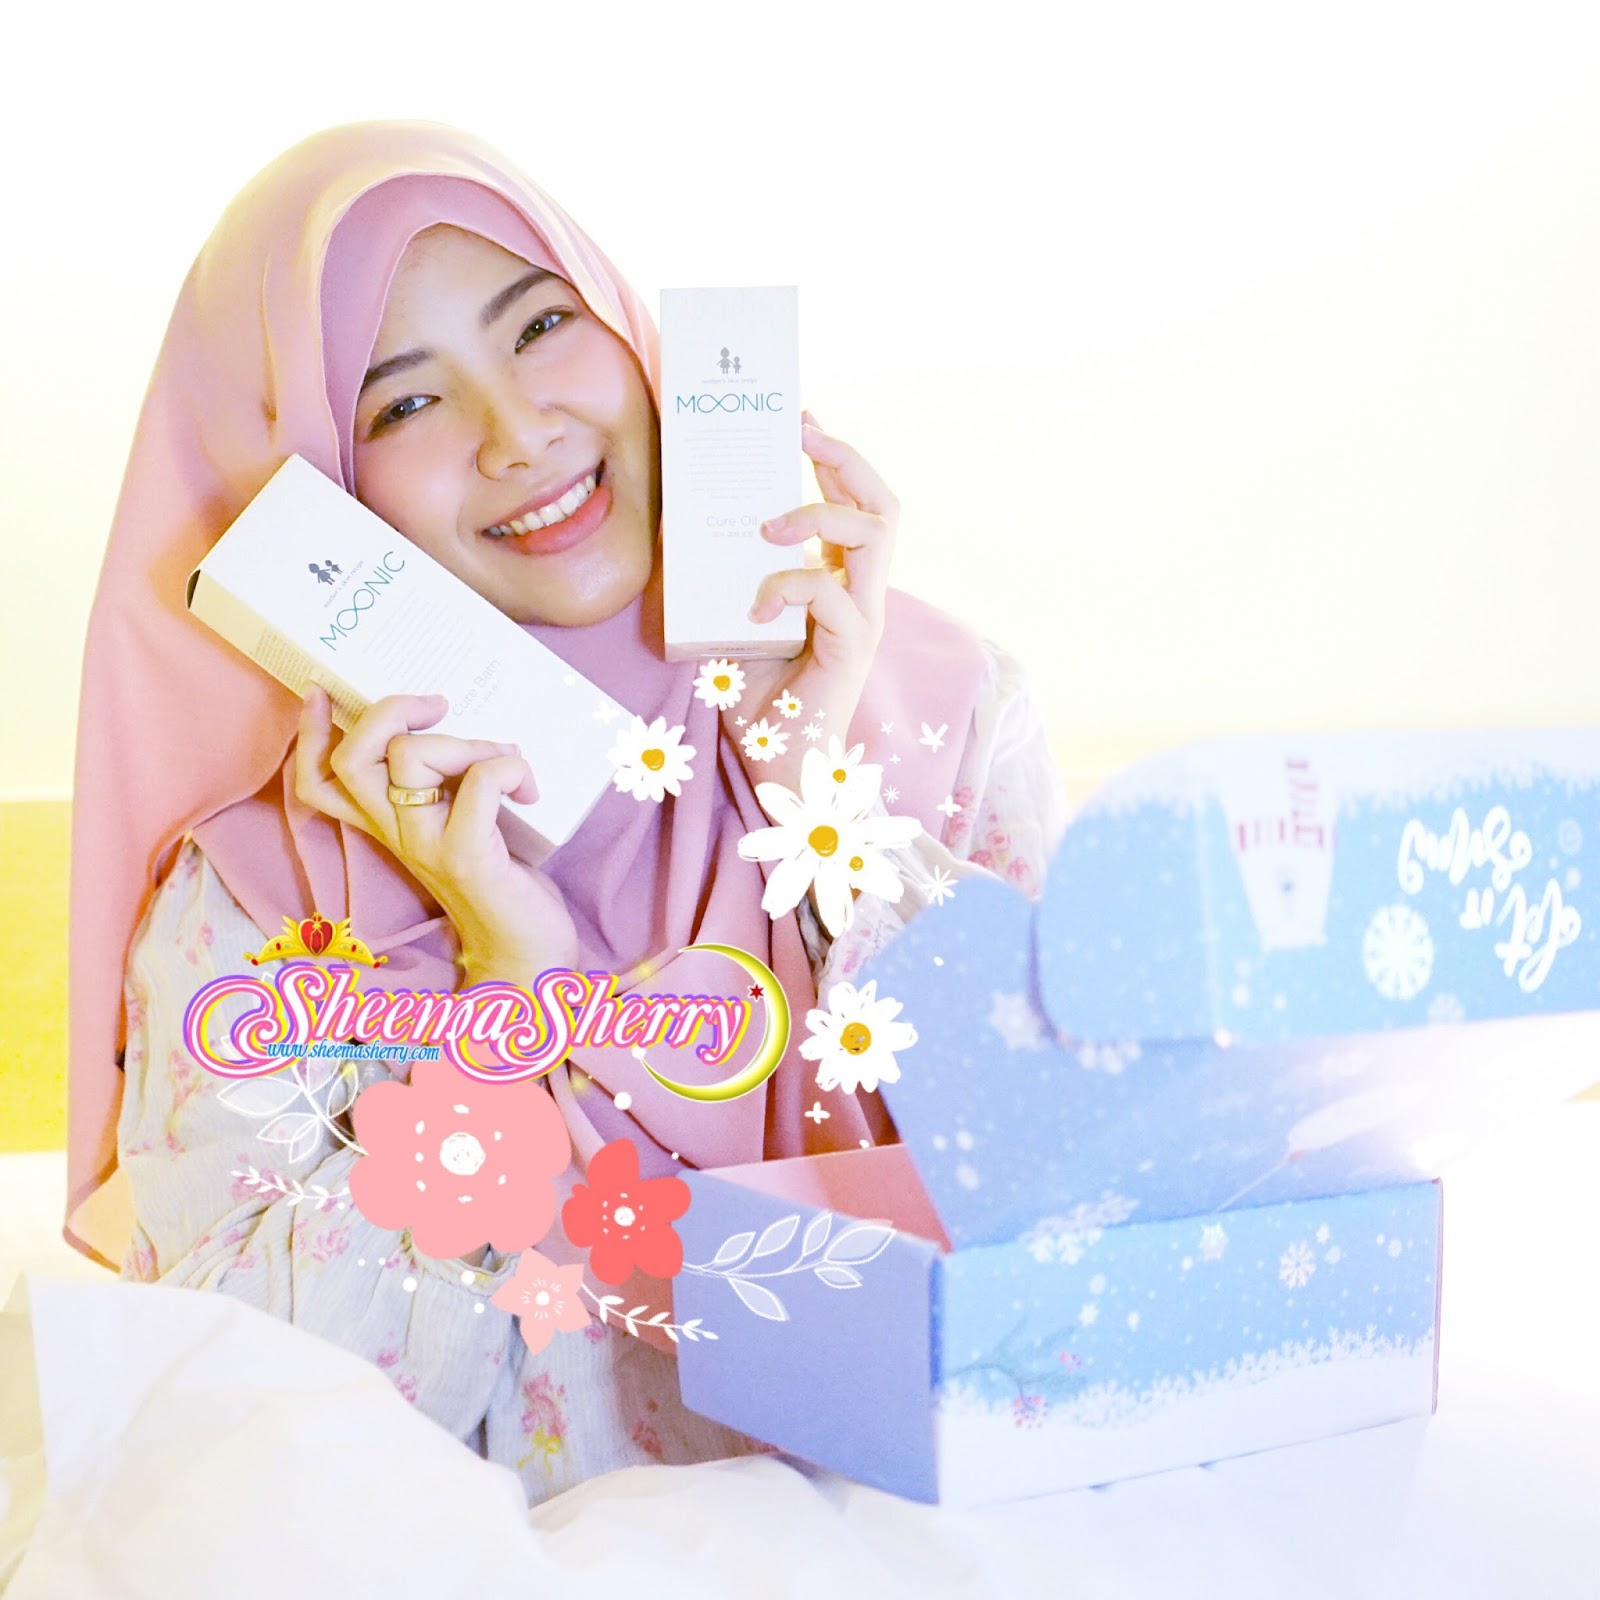 Baby Care Products from Korea? It's MOONIC! (Sponsored by Althea Korea) Sheema Sherry Kawaii Hijabi Baby Gear Beauty Blogger Muslim Moonic Cure Bath Cure Oil